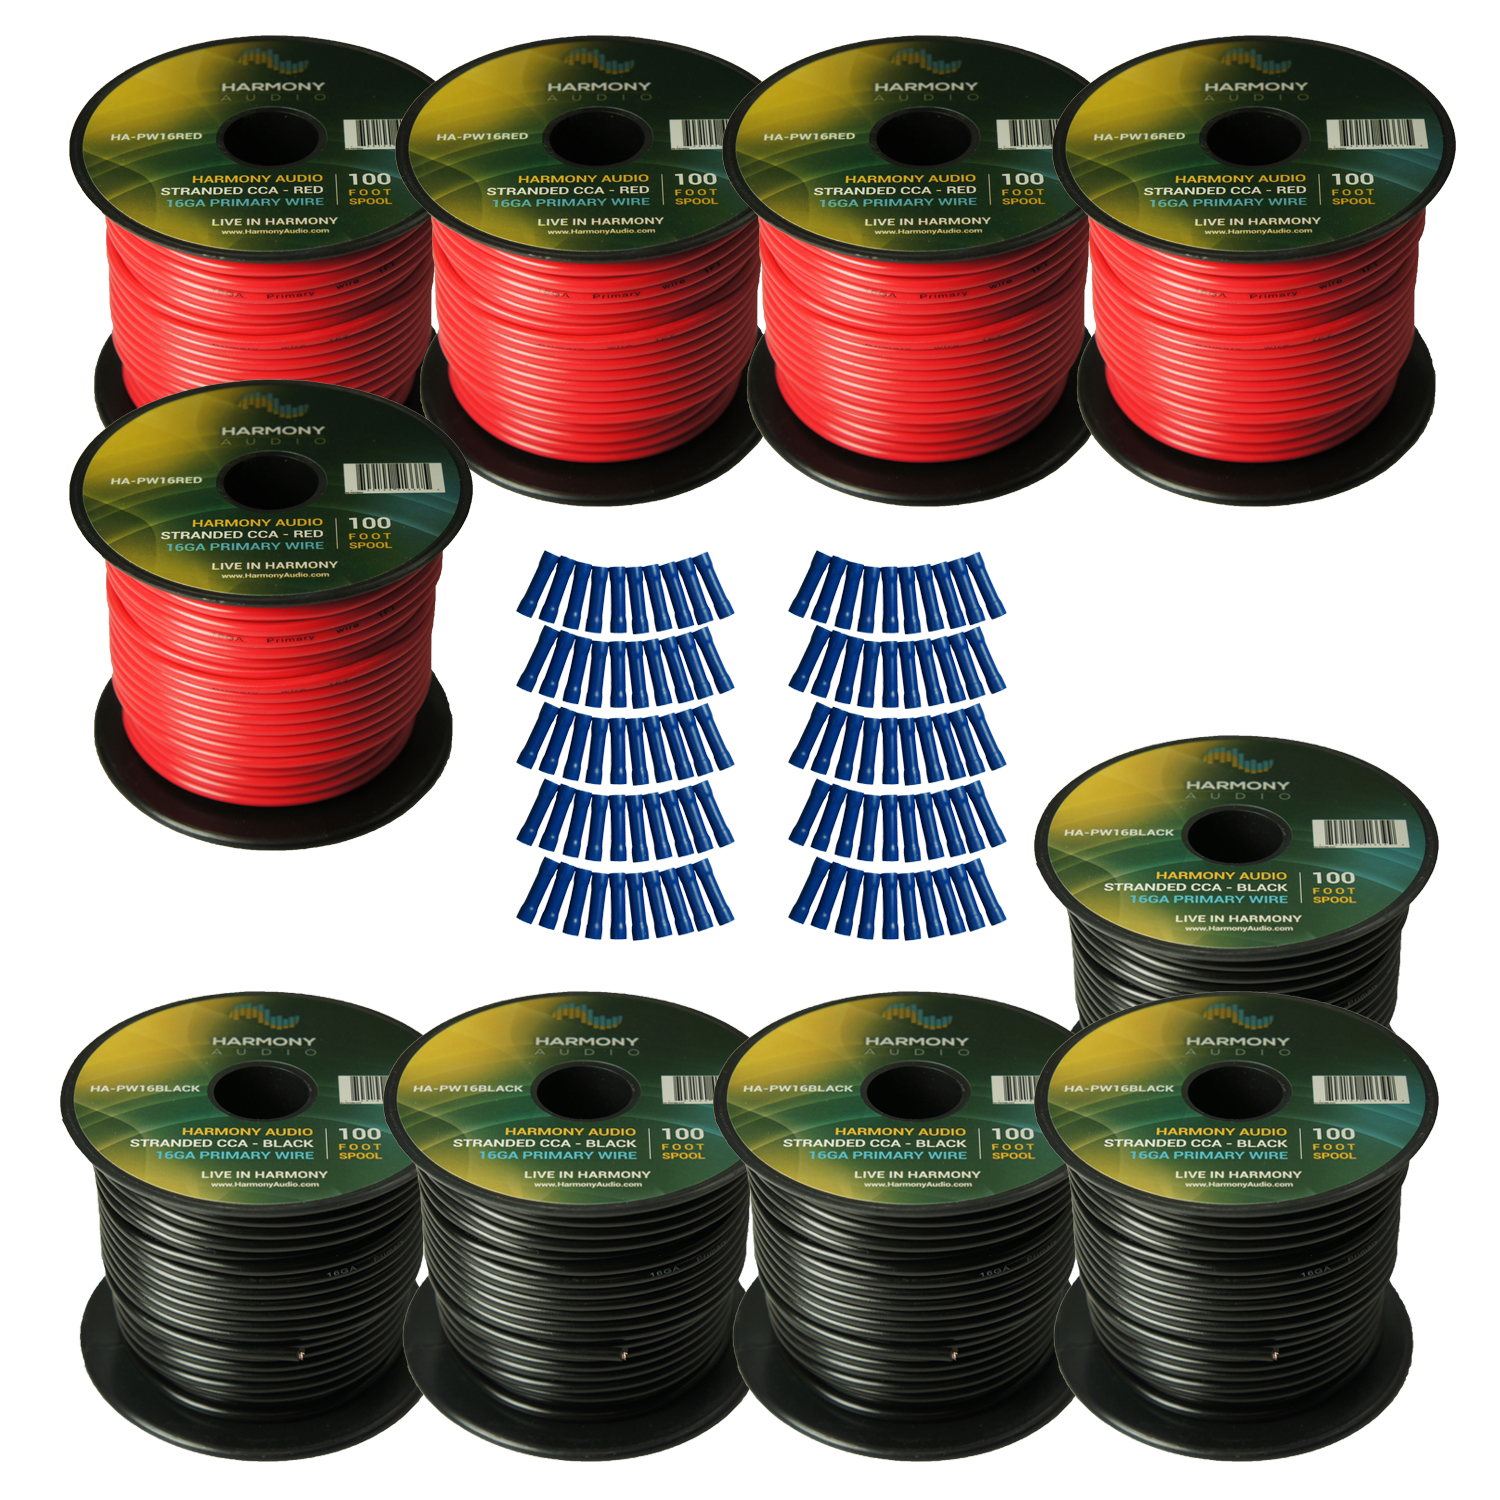 Harmony Audio Primary Single Conductor 16 Gauge Power or Ground Wire - 10 Rolls - 1000 Feet - Red & Black for Car Audio / Trailer / Model Train / Remote